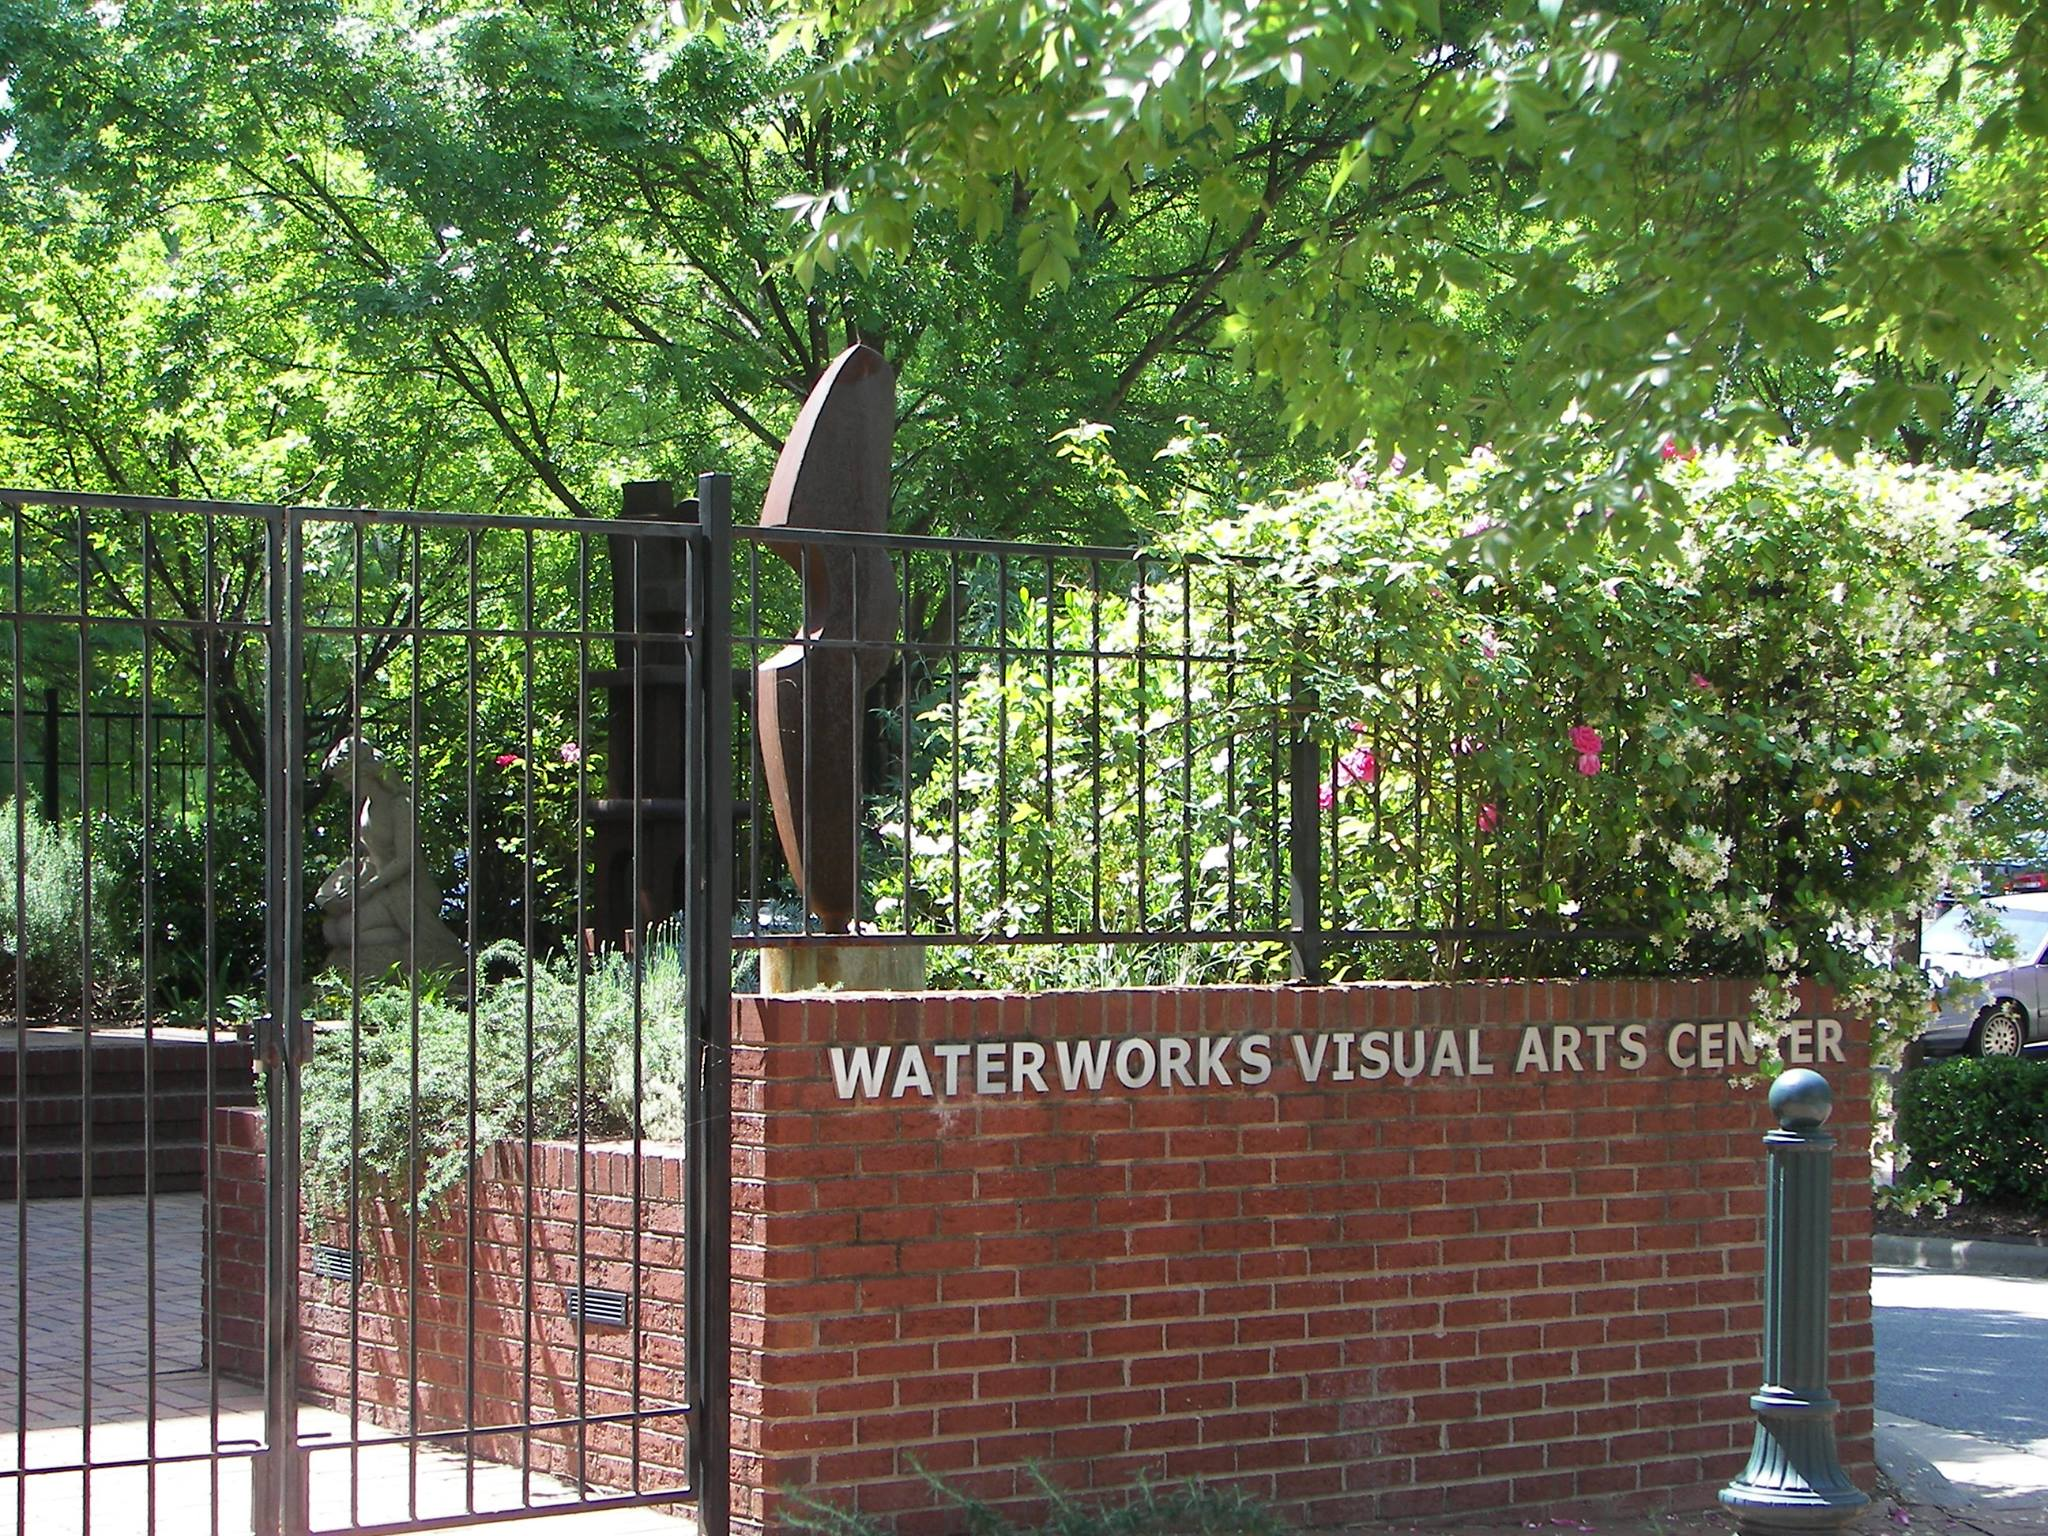 the Waterworks exterior sign